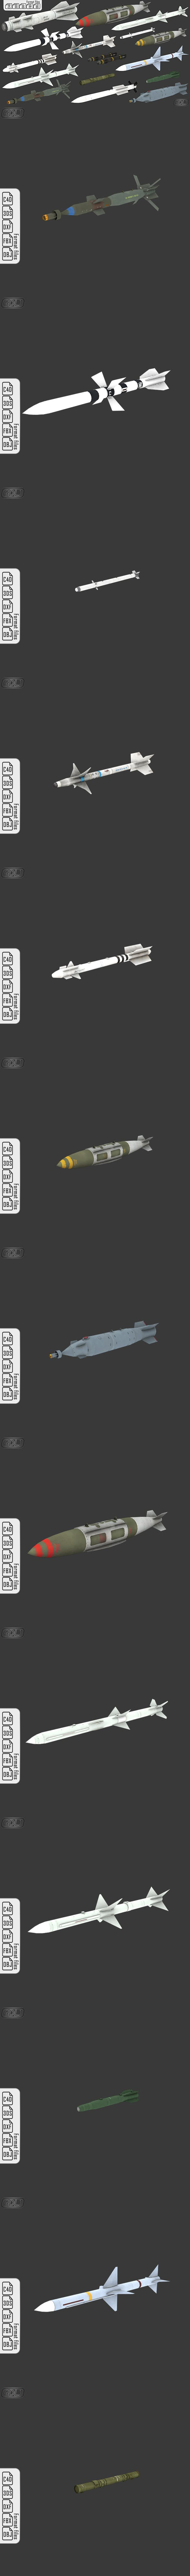 16 Missiles - 3DOcean Item for Sale